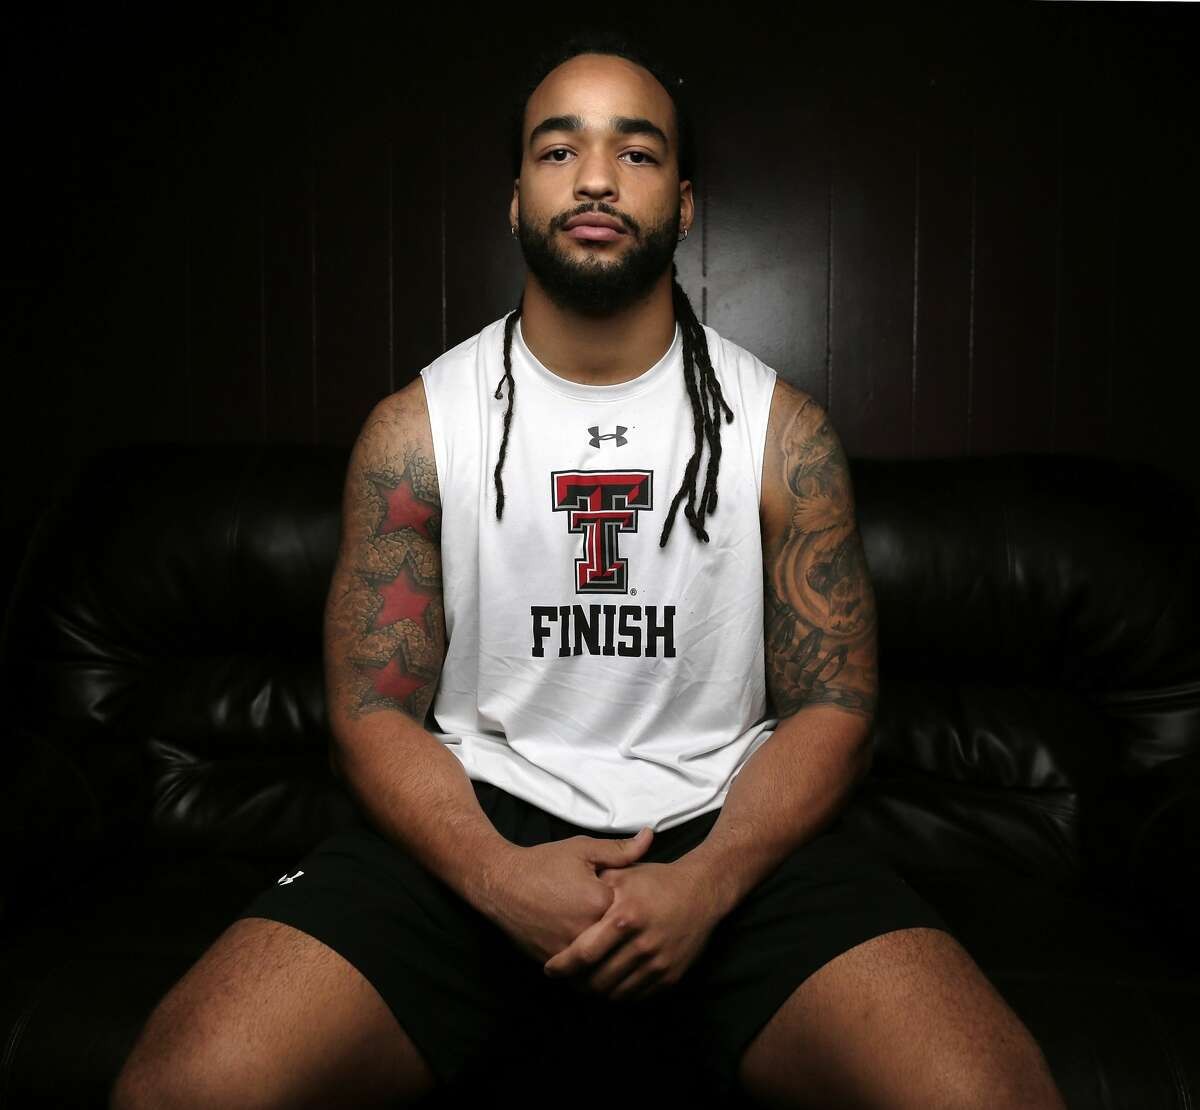 Dakota Allen, NFL prospect, at his home Friday, Apr. 5, 2019 in Humble, TX. Allen played for Summer Creek and Texas Tech, but had a brush with the law. He's gotten a second chance and is now on the straight and narrow.